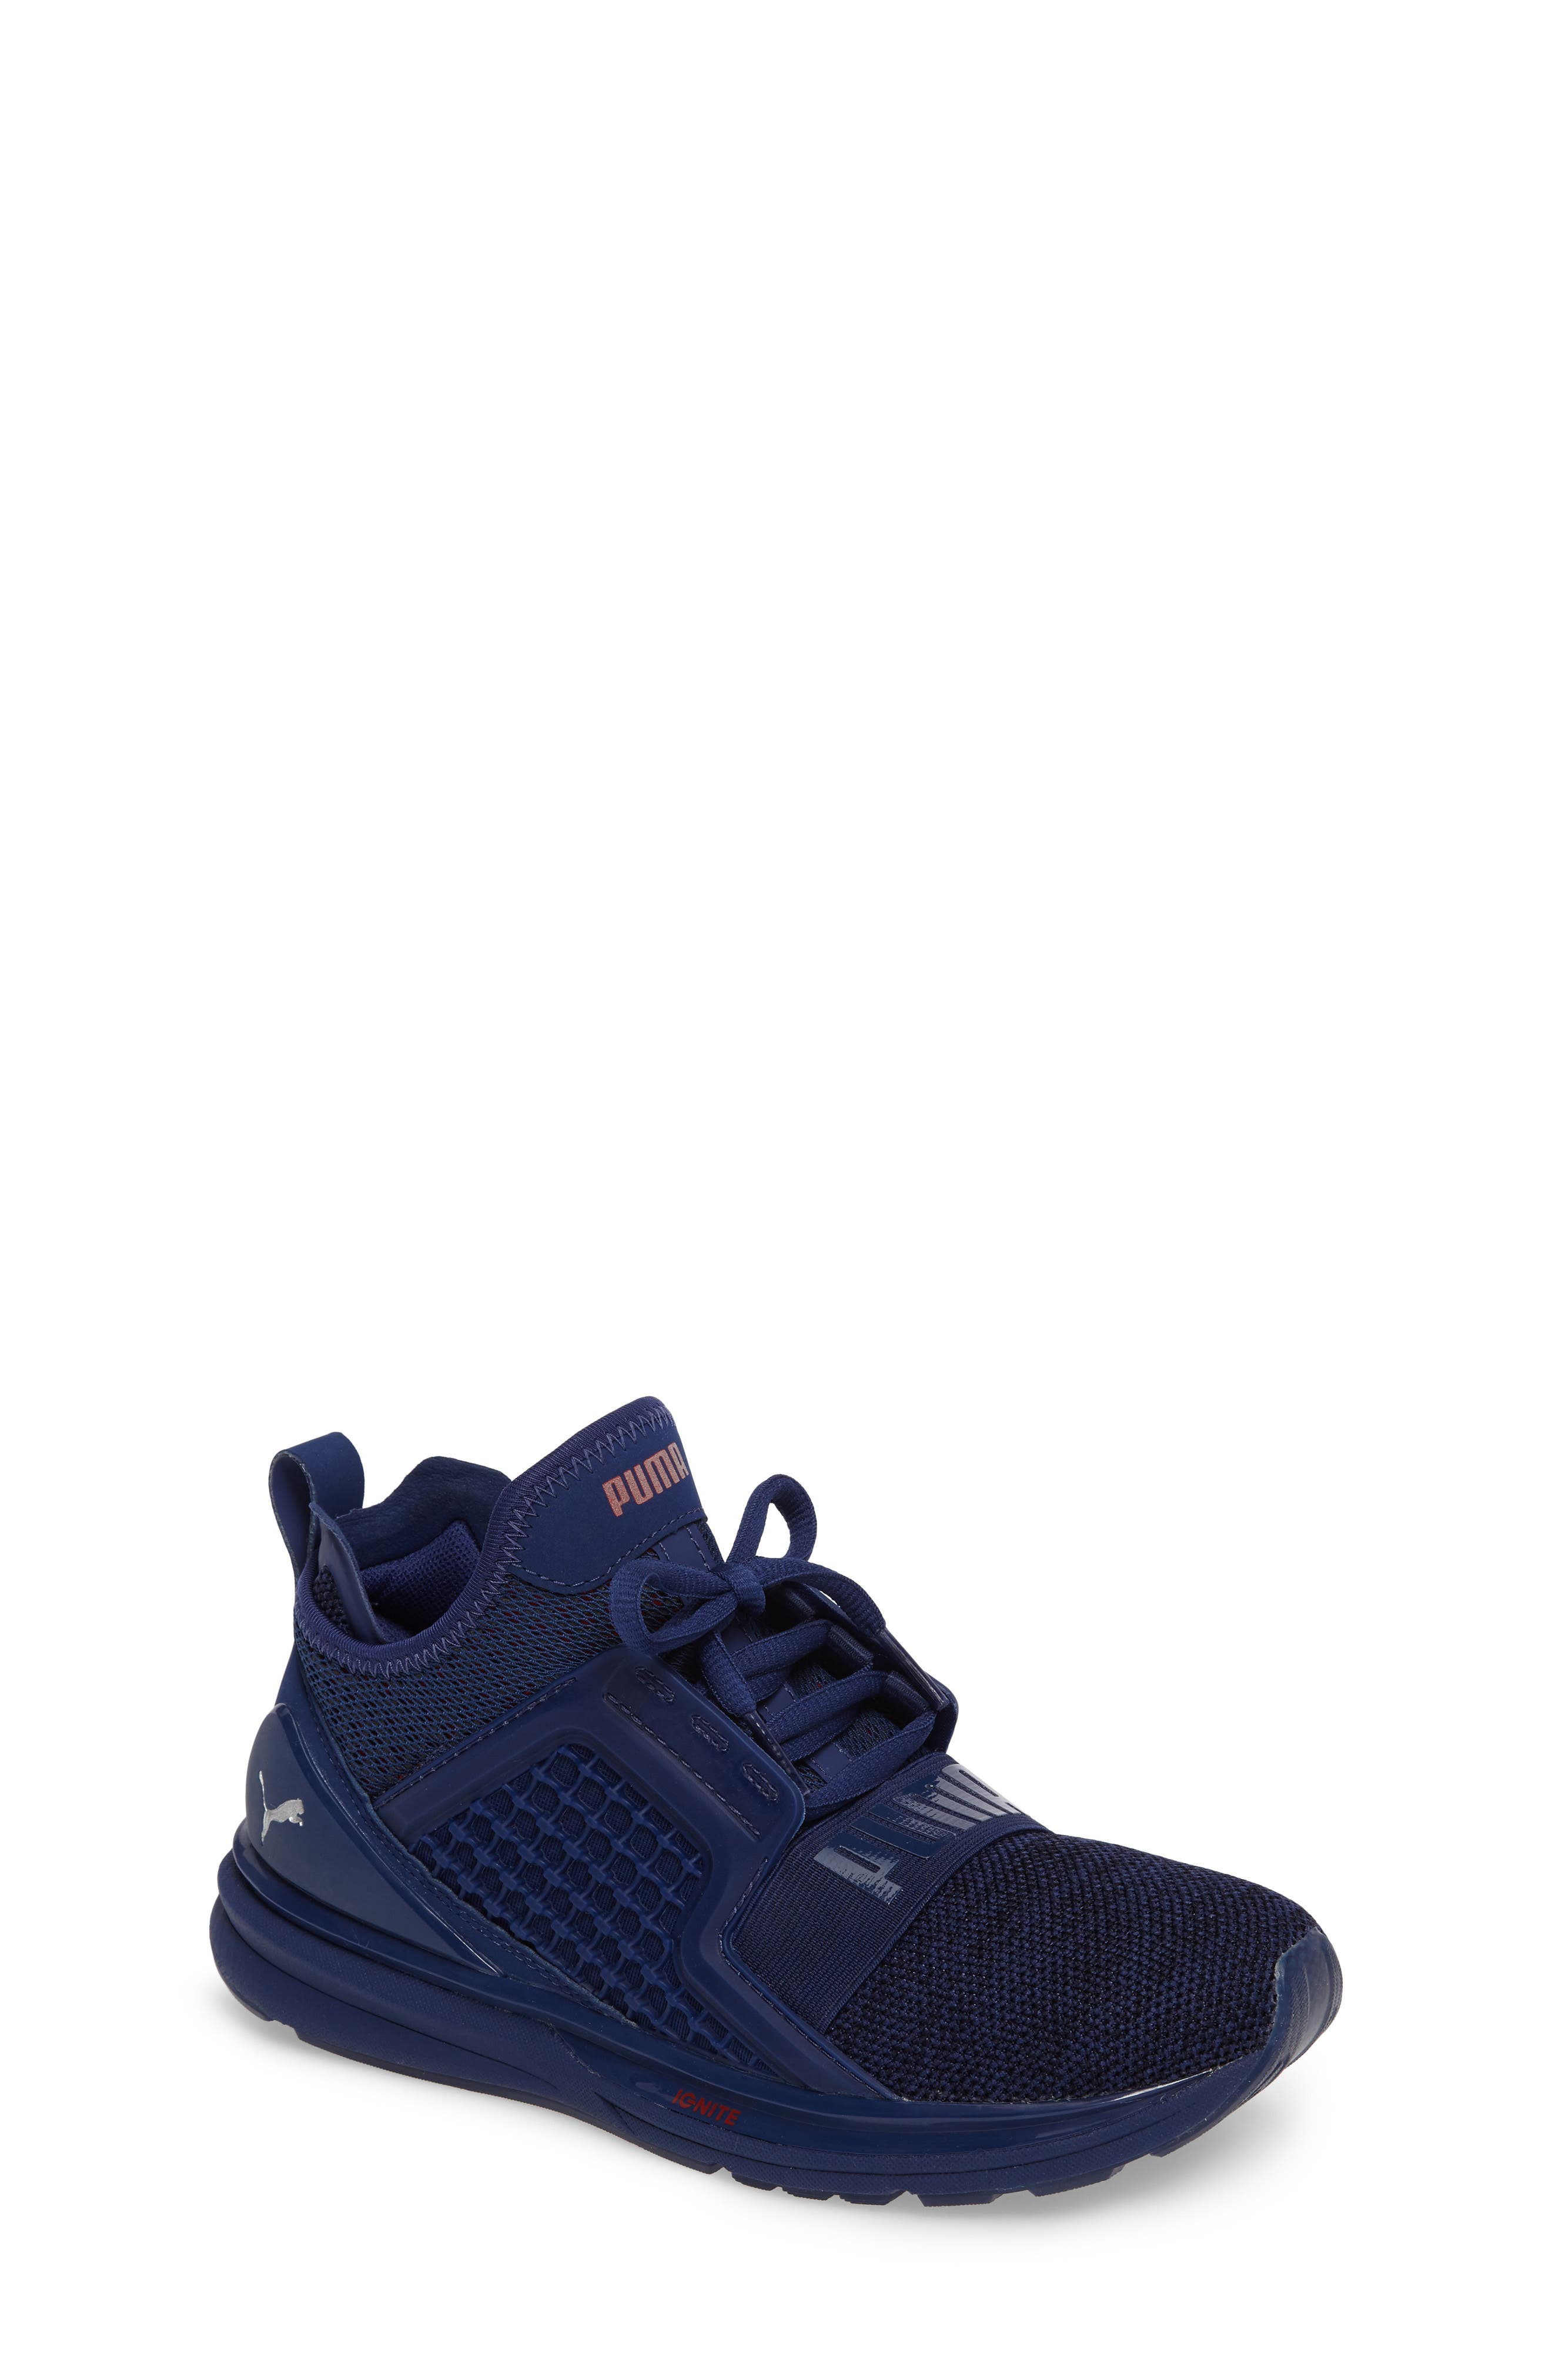 Ignite Limitless Sneaker,                         Main,                         color, Blue